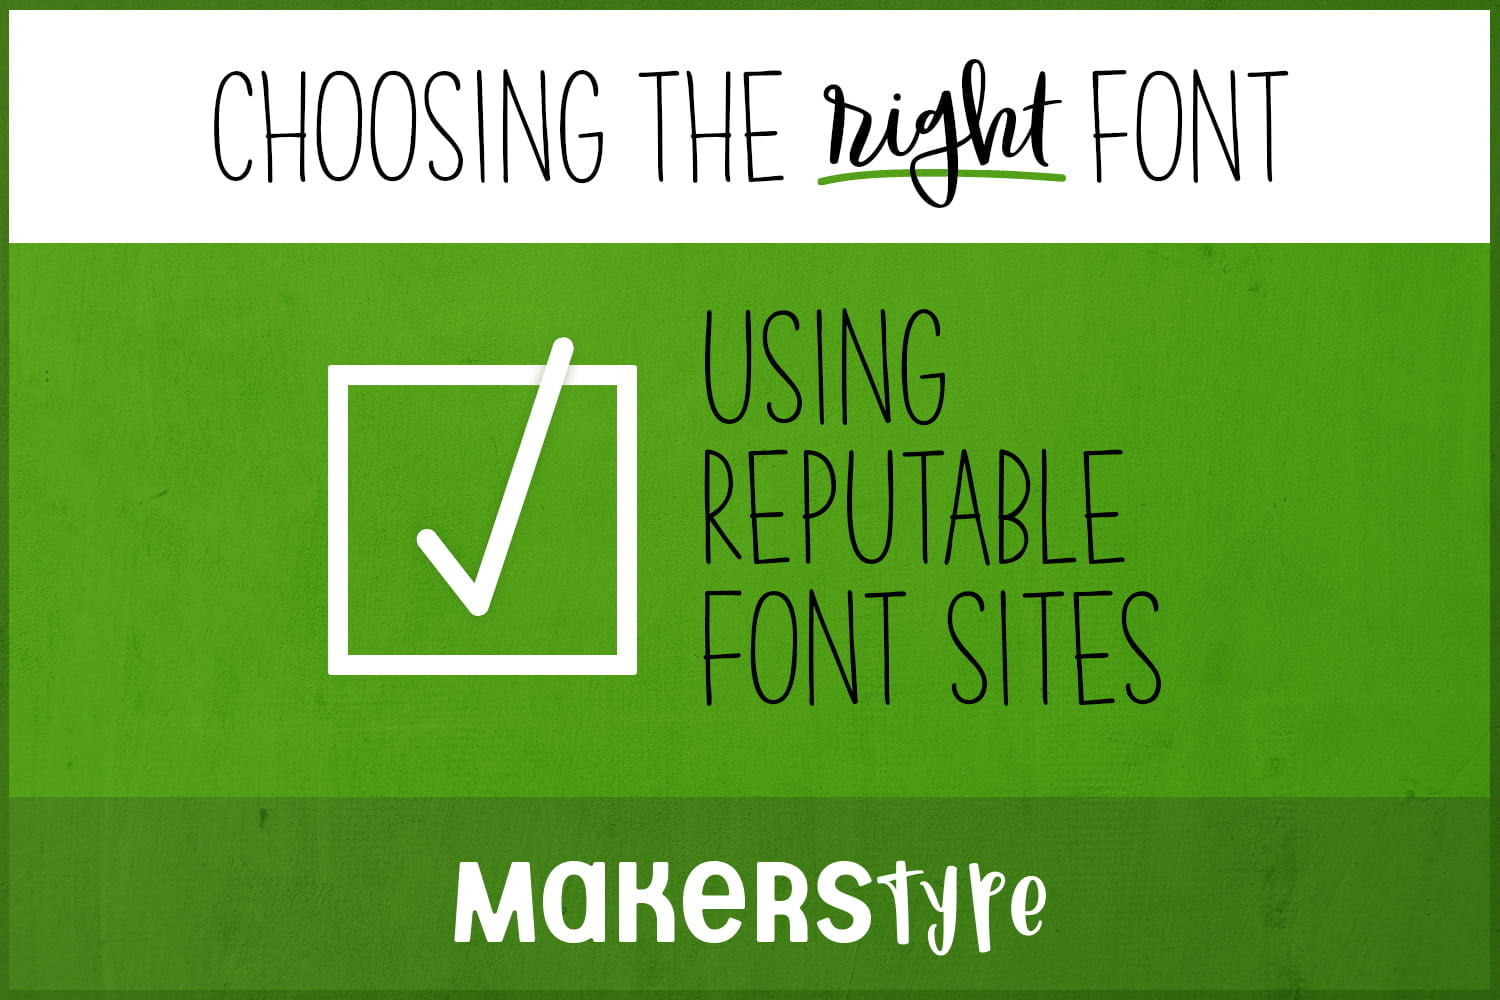 Reputable Font Sites